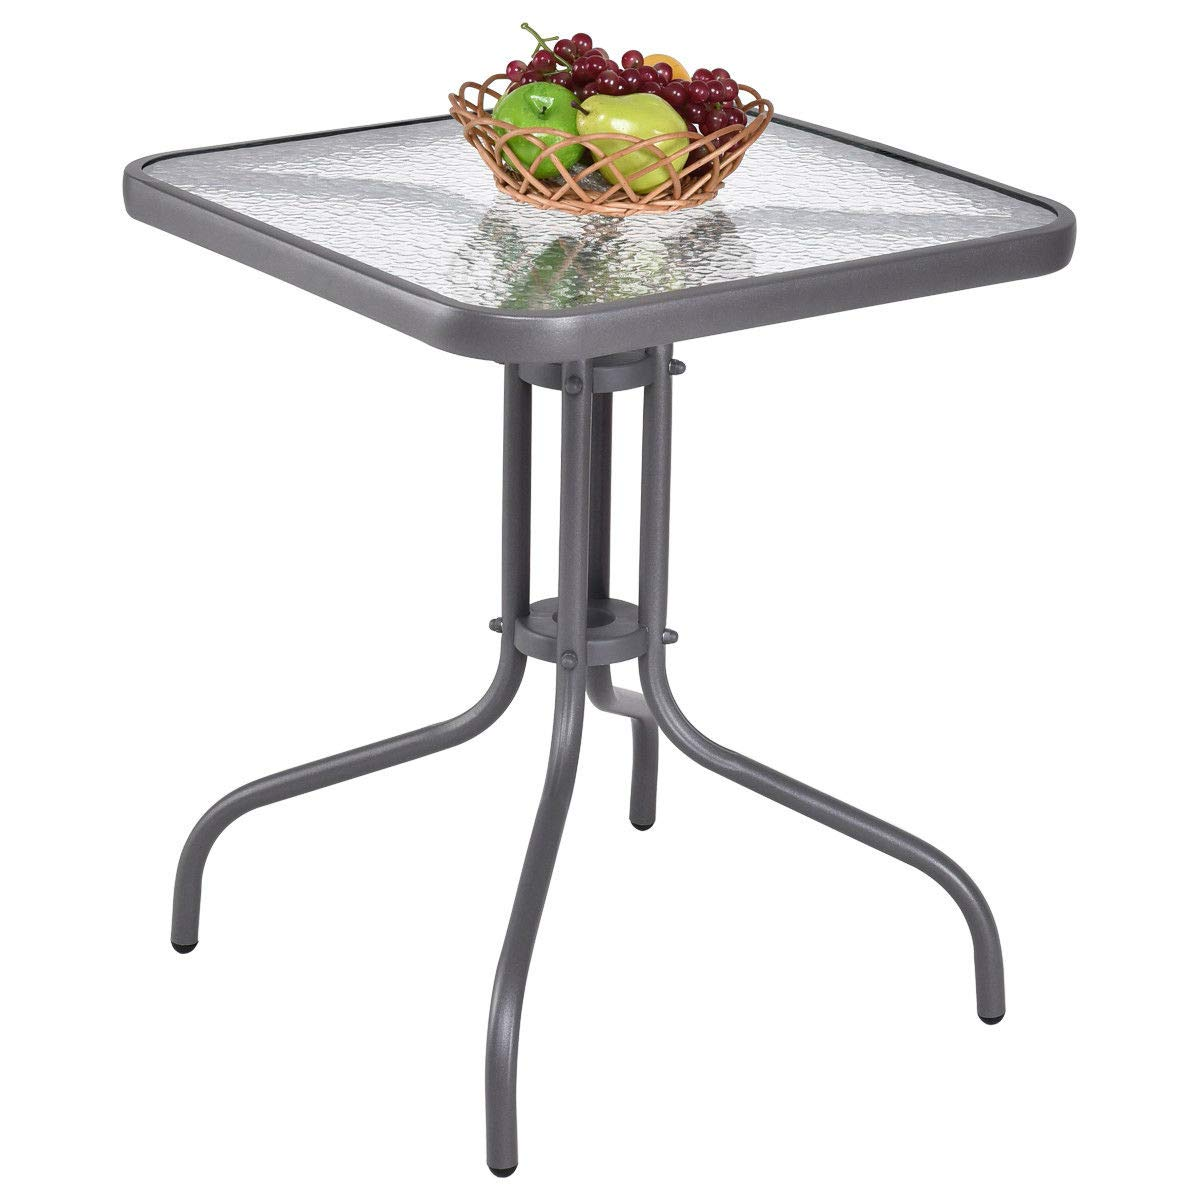 Eosphor US New Square Patio Table Garden Furniture Courtyard Outdoor Coffee Table Tempered Glass Top Steel Frame